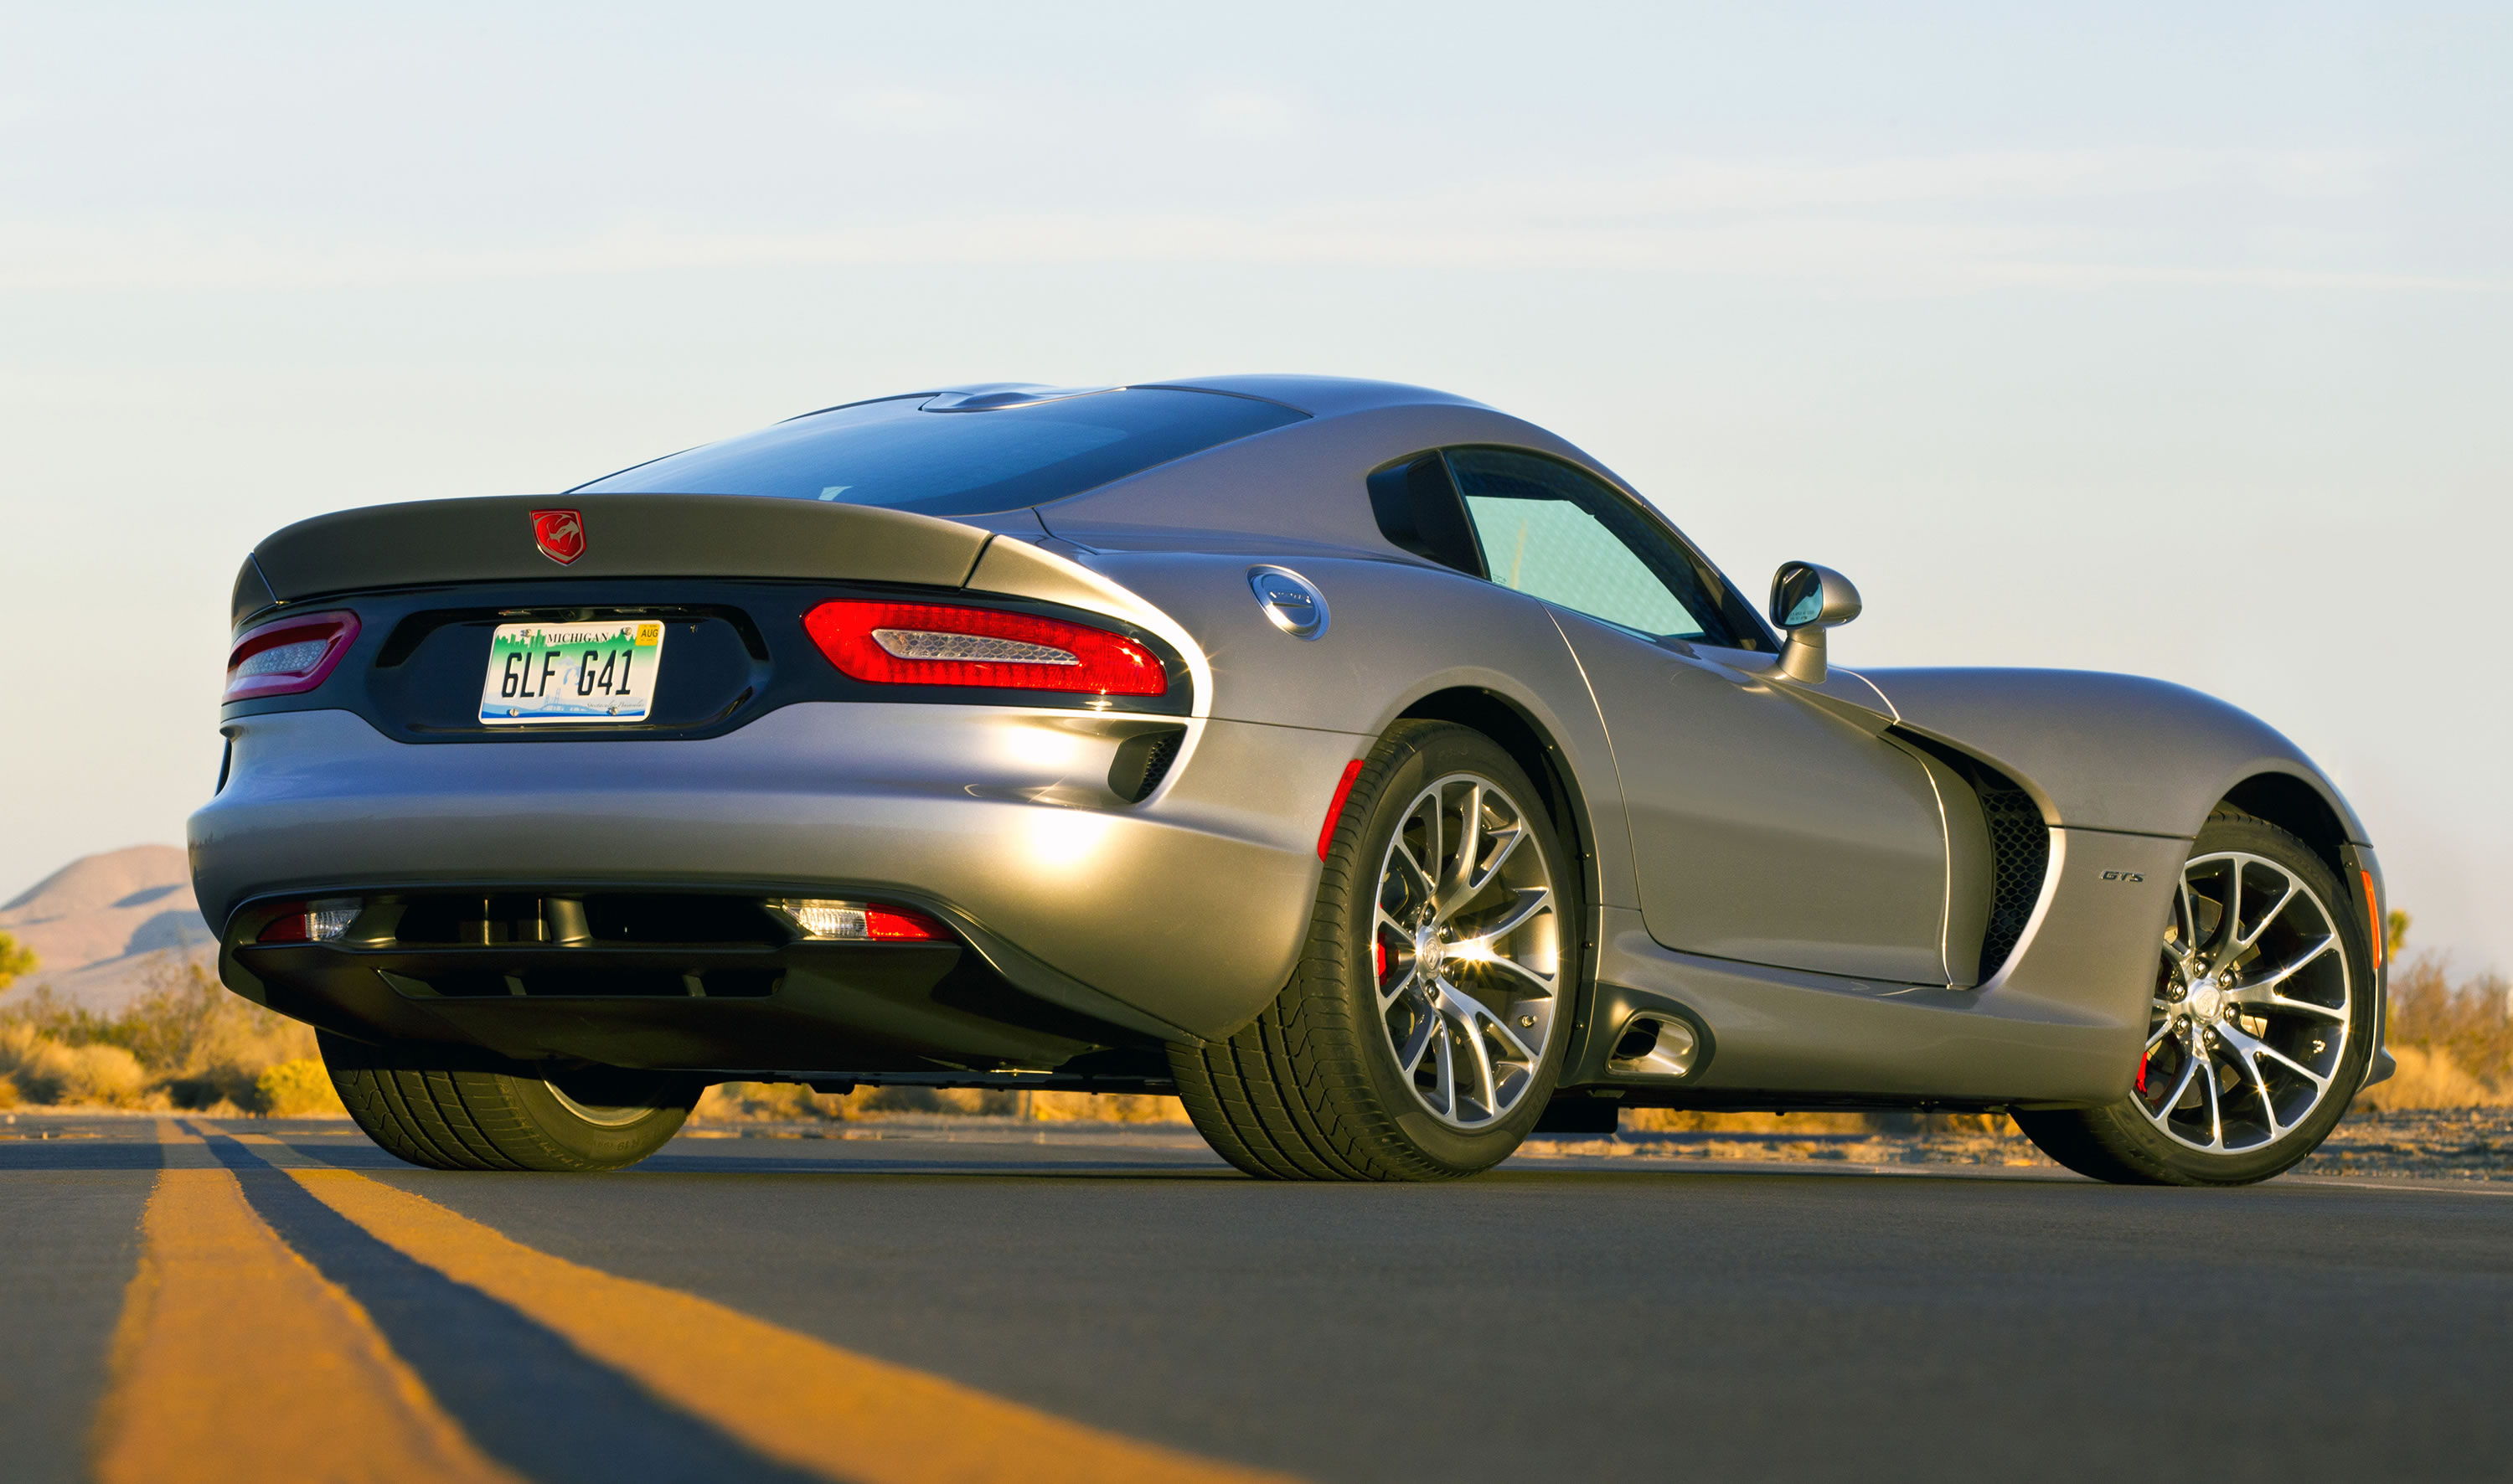 Engine calibration and transmission refinements for 2015 raise the horsepower rating for the viper s v